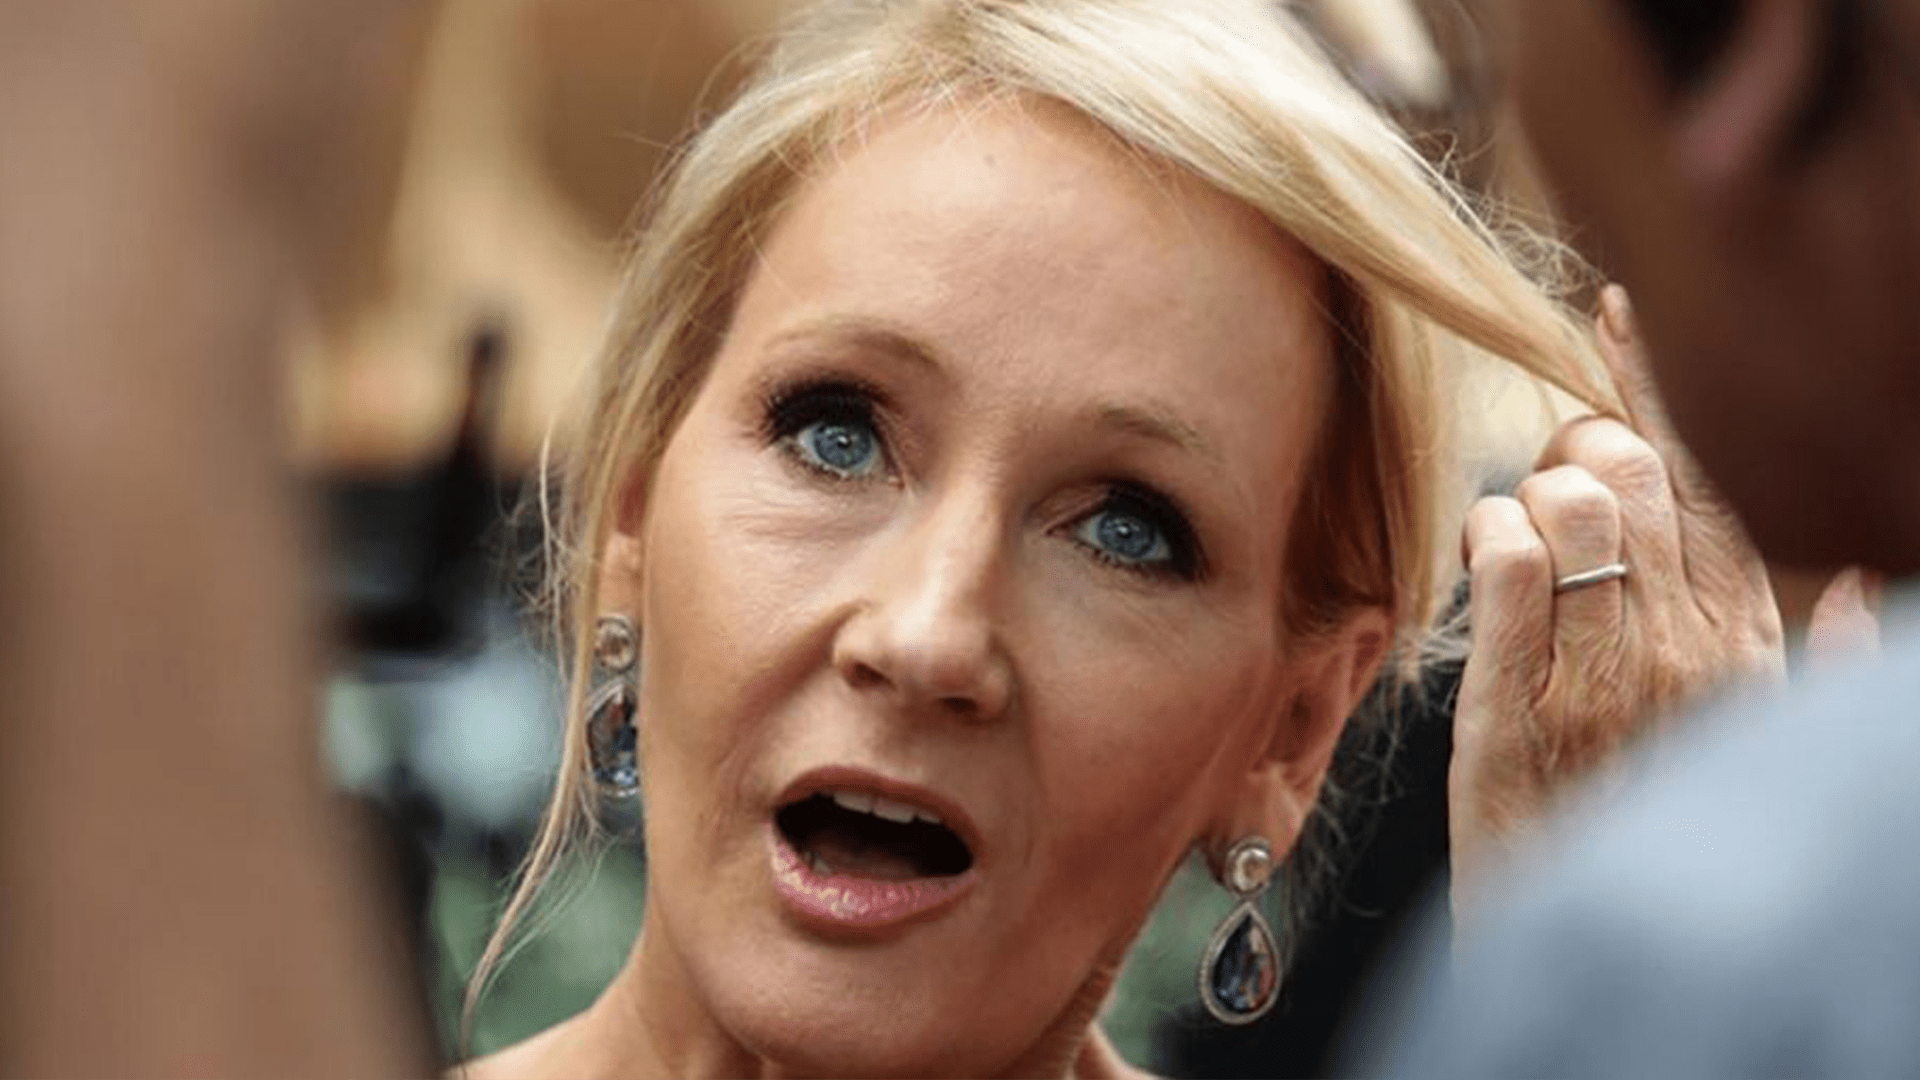 J.K. Rowling slammed for defending concept of biological sex: 'It isn't hate to speak the truth'